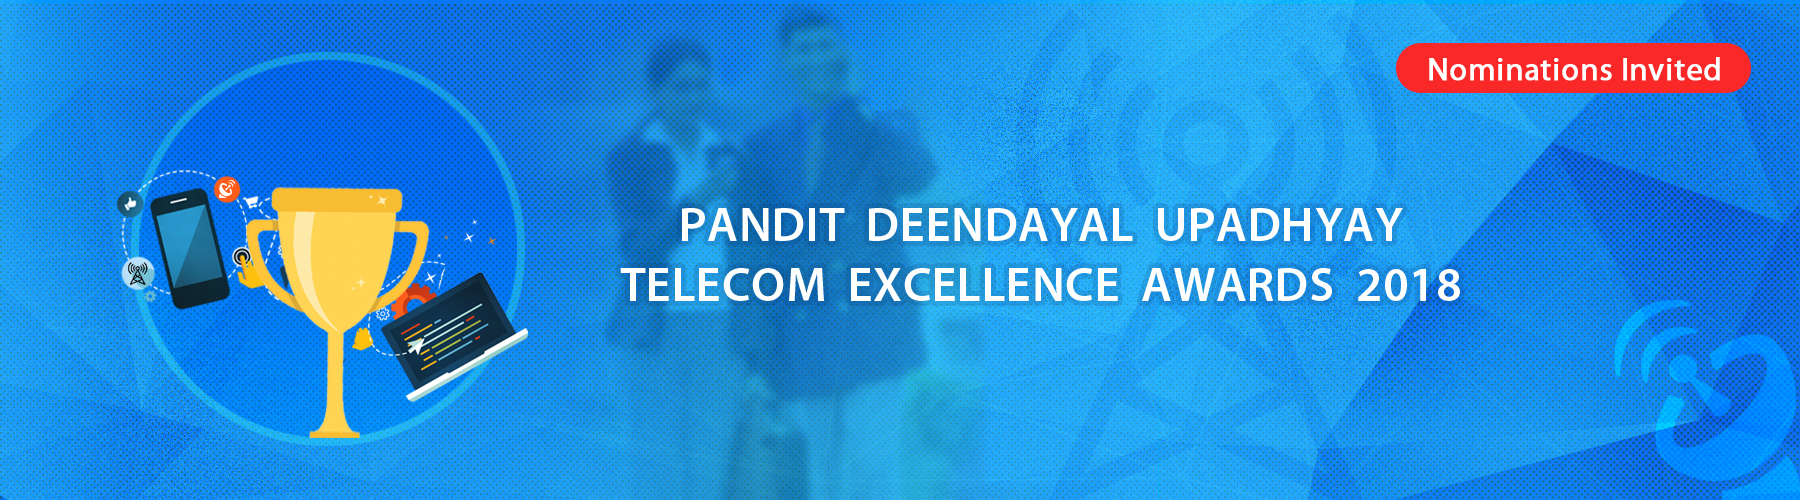 Nominations for Pandit Deendayal Upadhyay Telecom Skill Excellence Award 2018